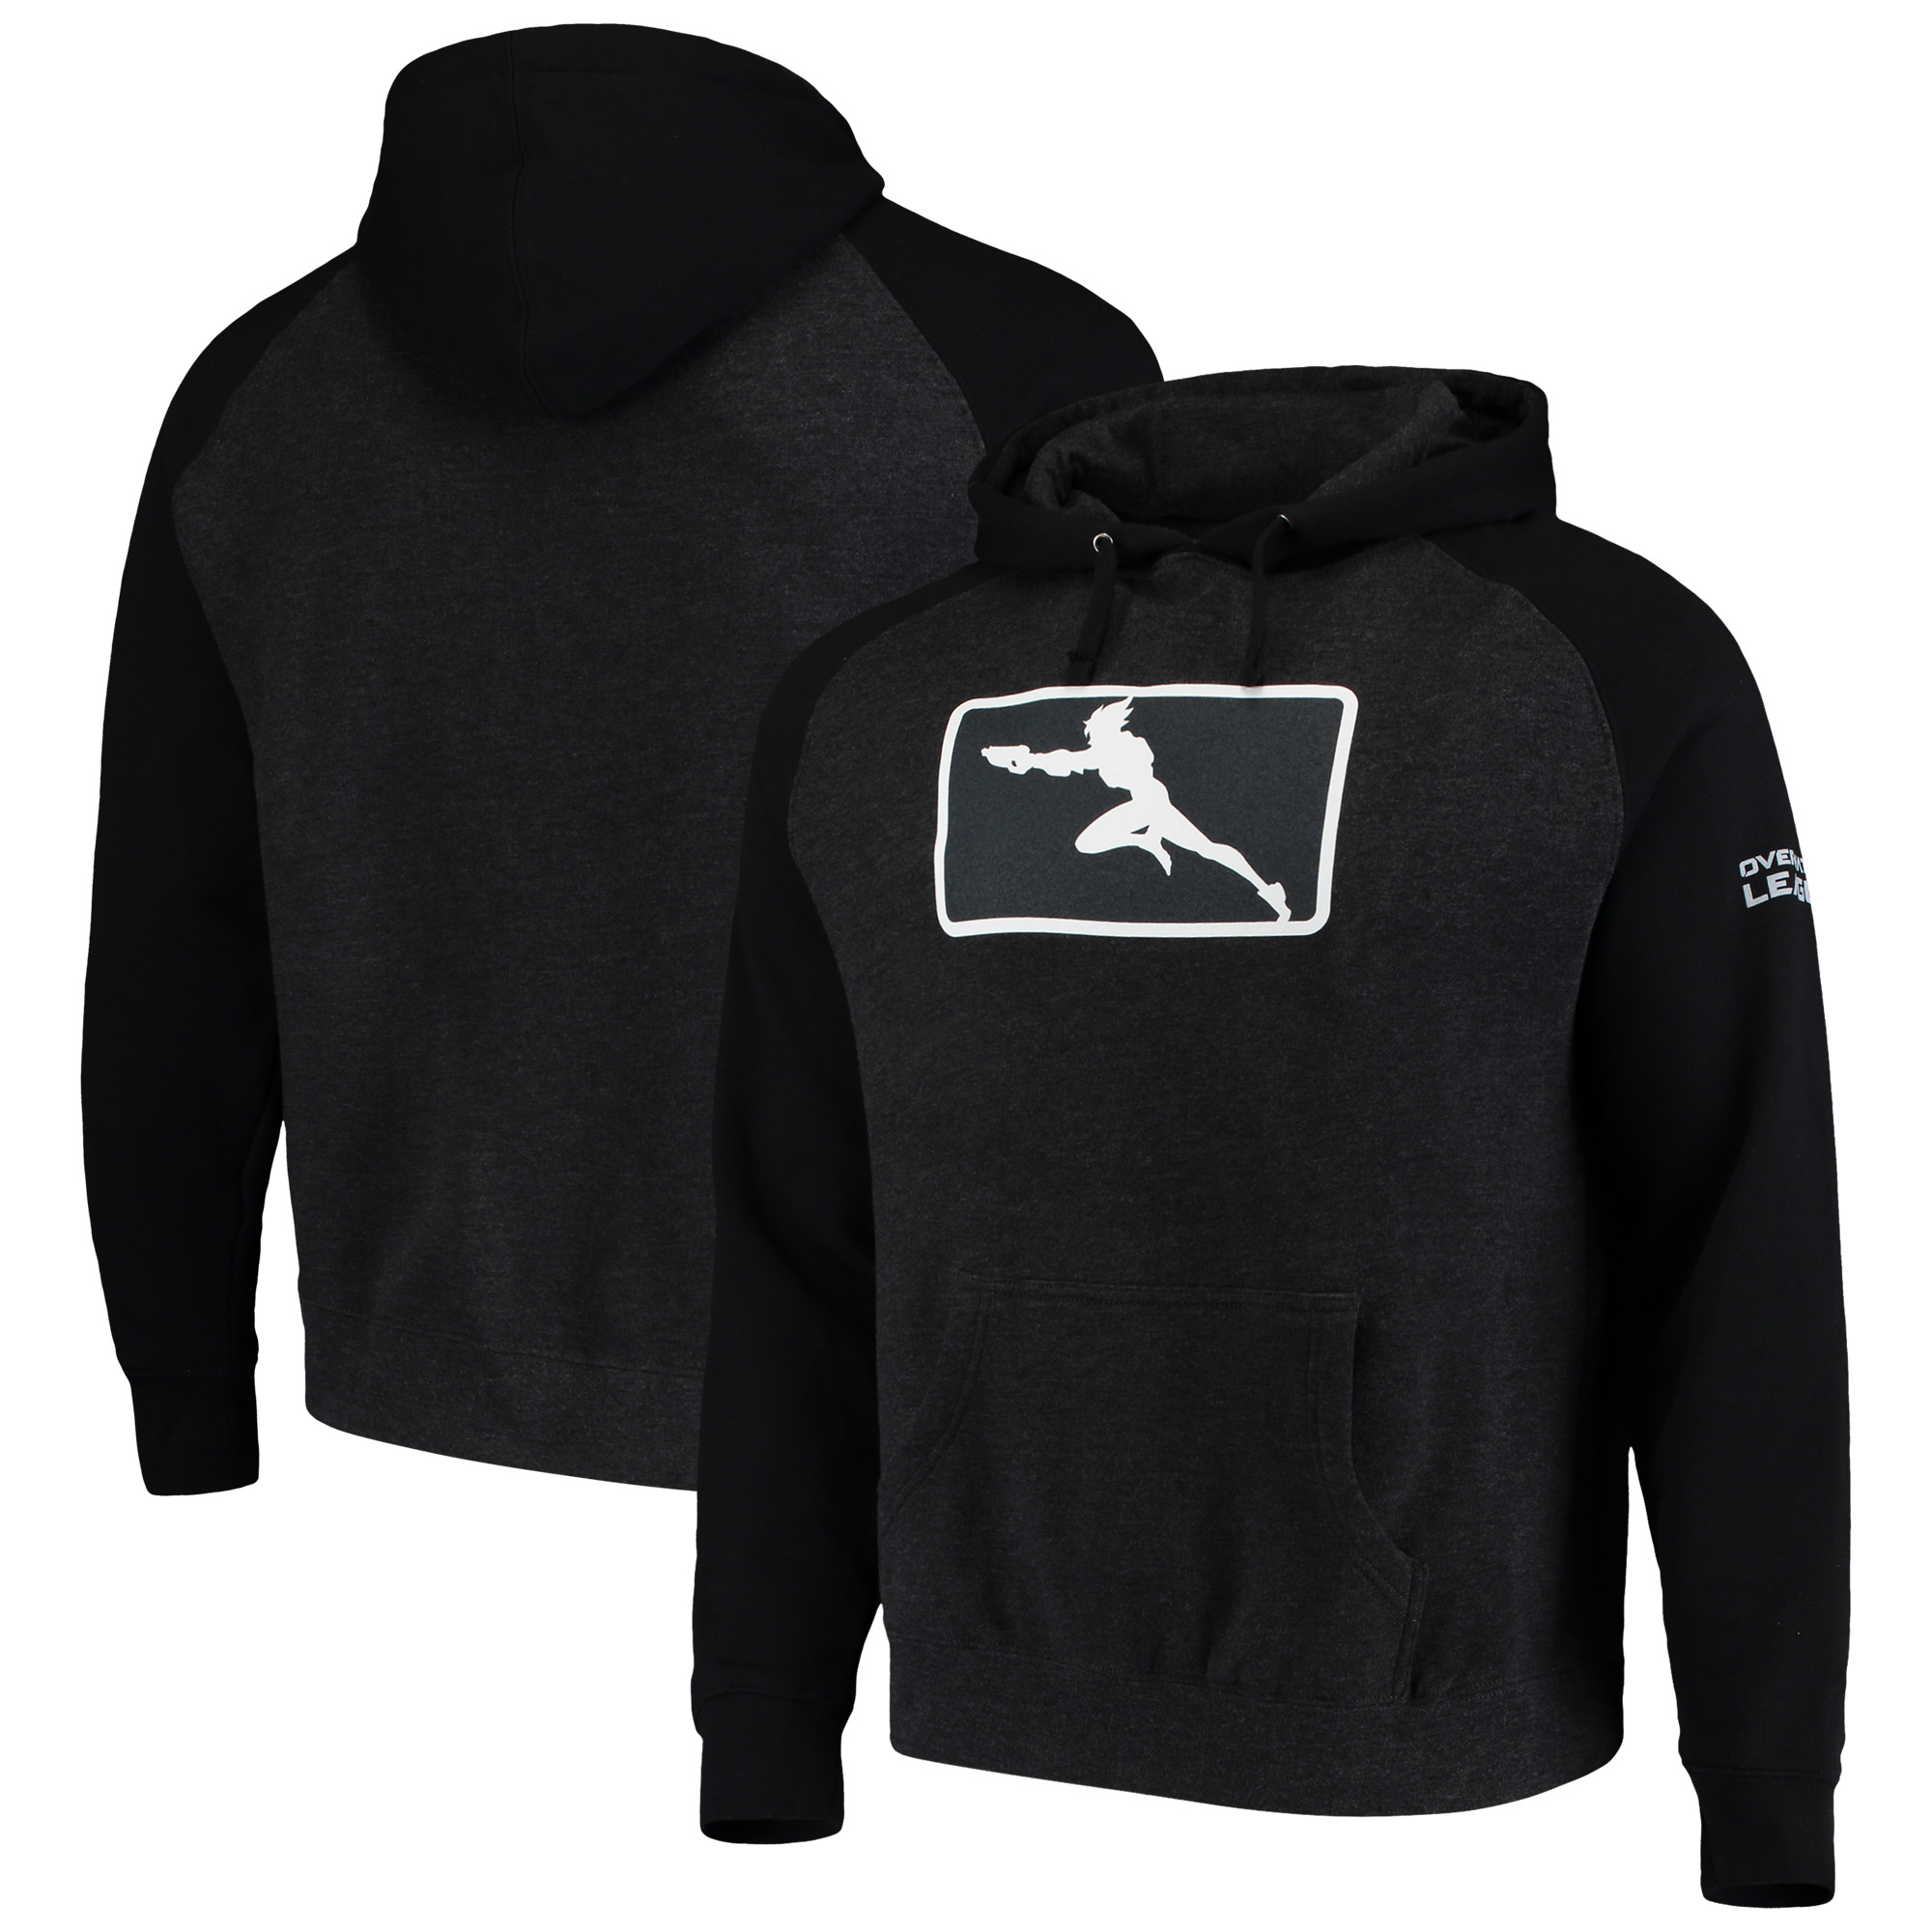 Overwatch League Franchise Logo Pullover Hoodie - Black/Charcoal